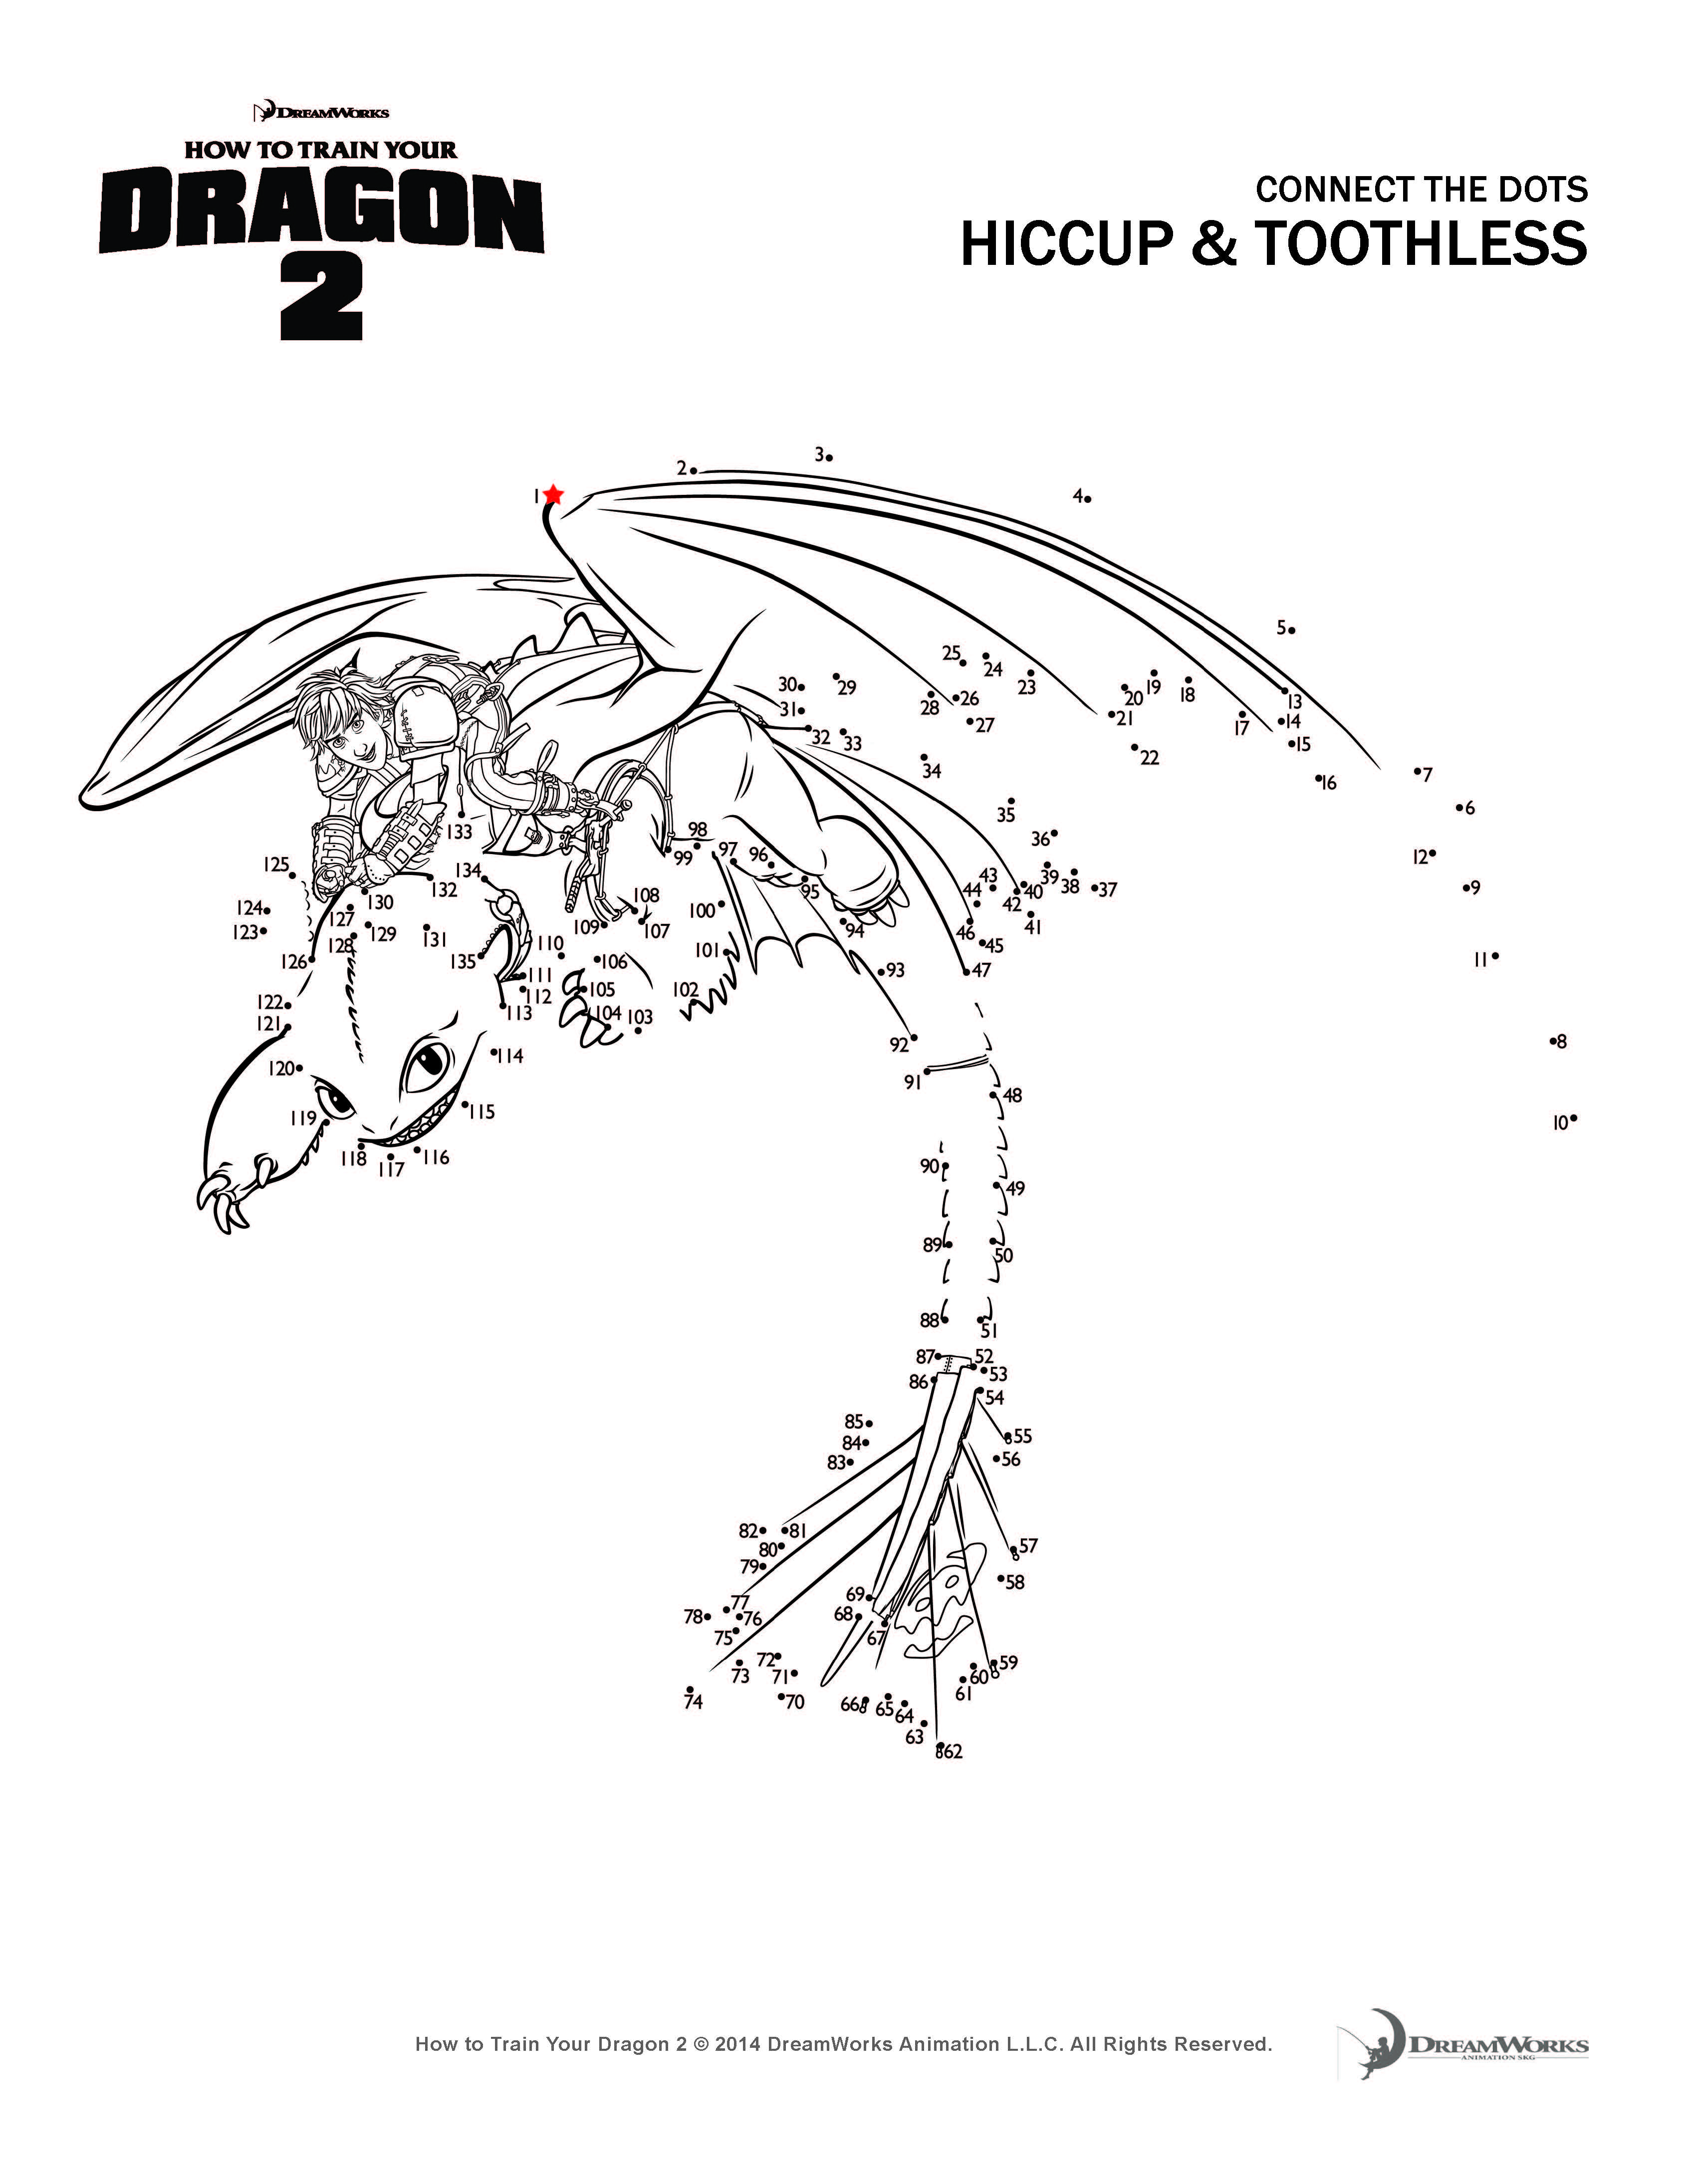 How To Train Your Dragon 2 Coloring Pages And Activity Sheets Toothless The Coloring Pages